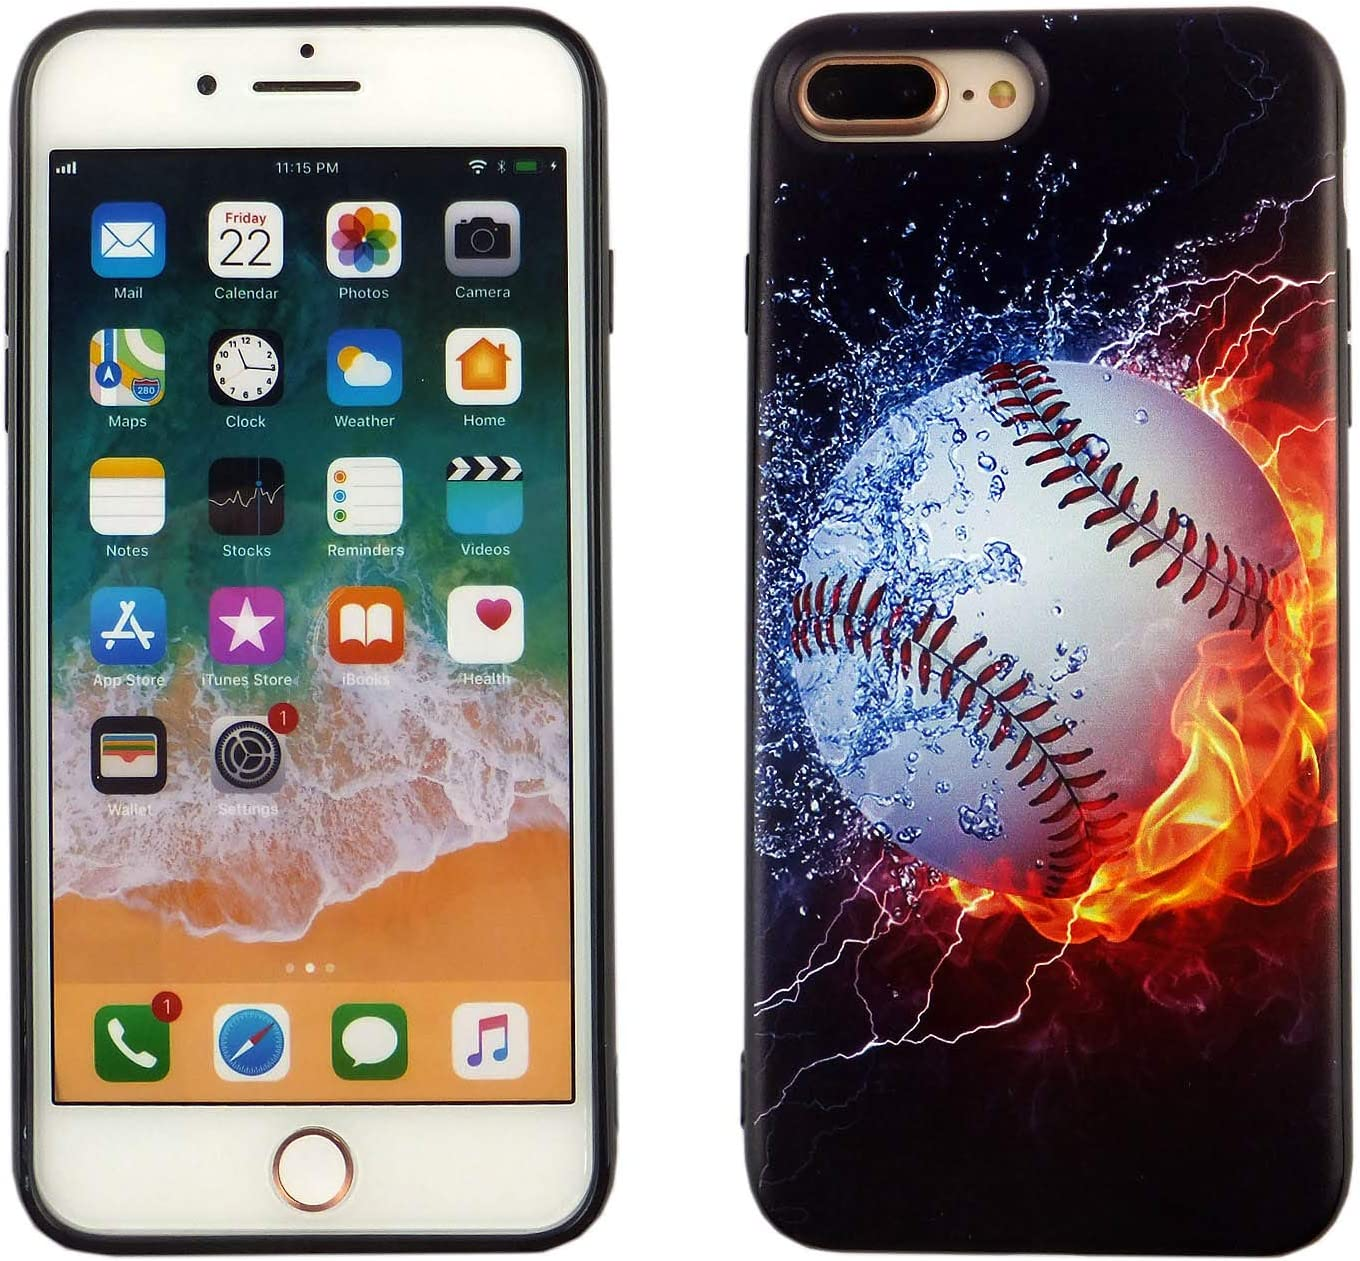 iPhone 8 Plus Case Baseball on Water, iPhone 7 Plus Case Baseball on Fire, IMAGITOUCH Anti-Scratch Shock Proof Clear Case Soft Touch Slim Fit Flexible TPU Case Bumper Cover for iPhone 8+/7+